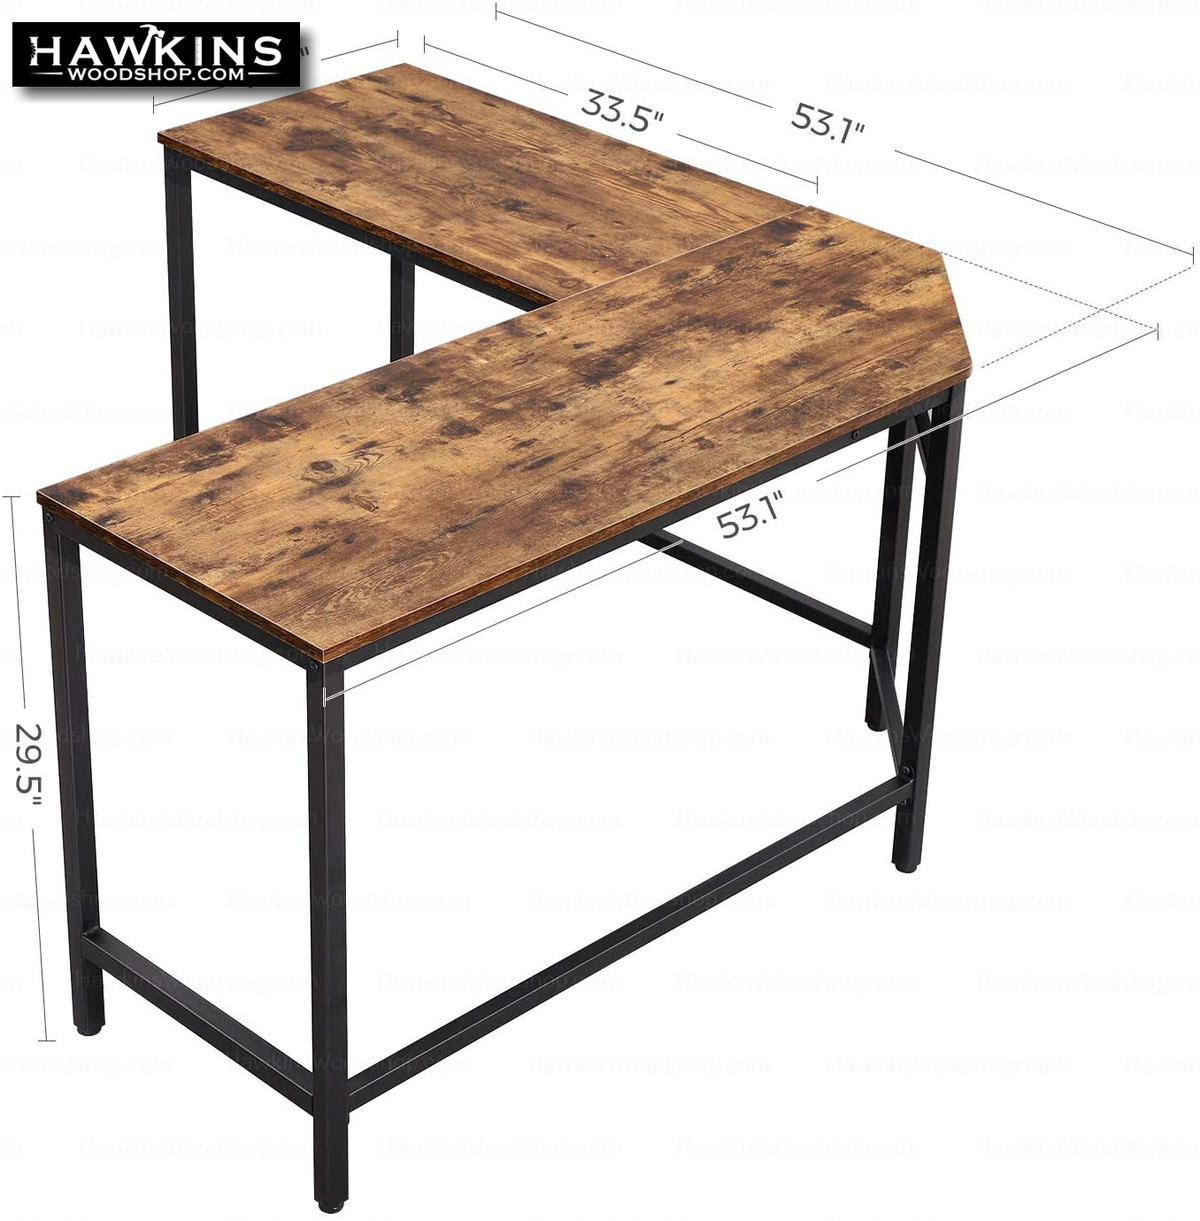 Enjoy fast, free nationwide shipping!  Owned by a husband and wife team of high-school music teachers, HawkinsWoodshop.com is your one stop shop for affordable furniture.  Shop HawkinsWoodshop.com for solid wood & metal modern, traditional, contemporary, industrial, custom, rustic, and farmhouse furniture including our Ryan II L-Shaped Desk w/Metal Base & Wood Top.